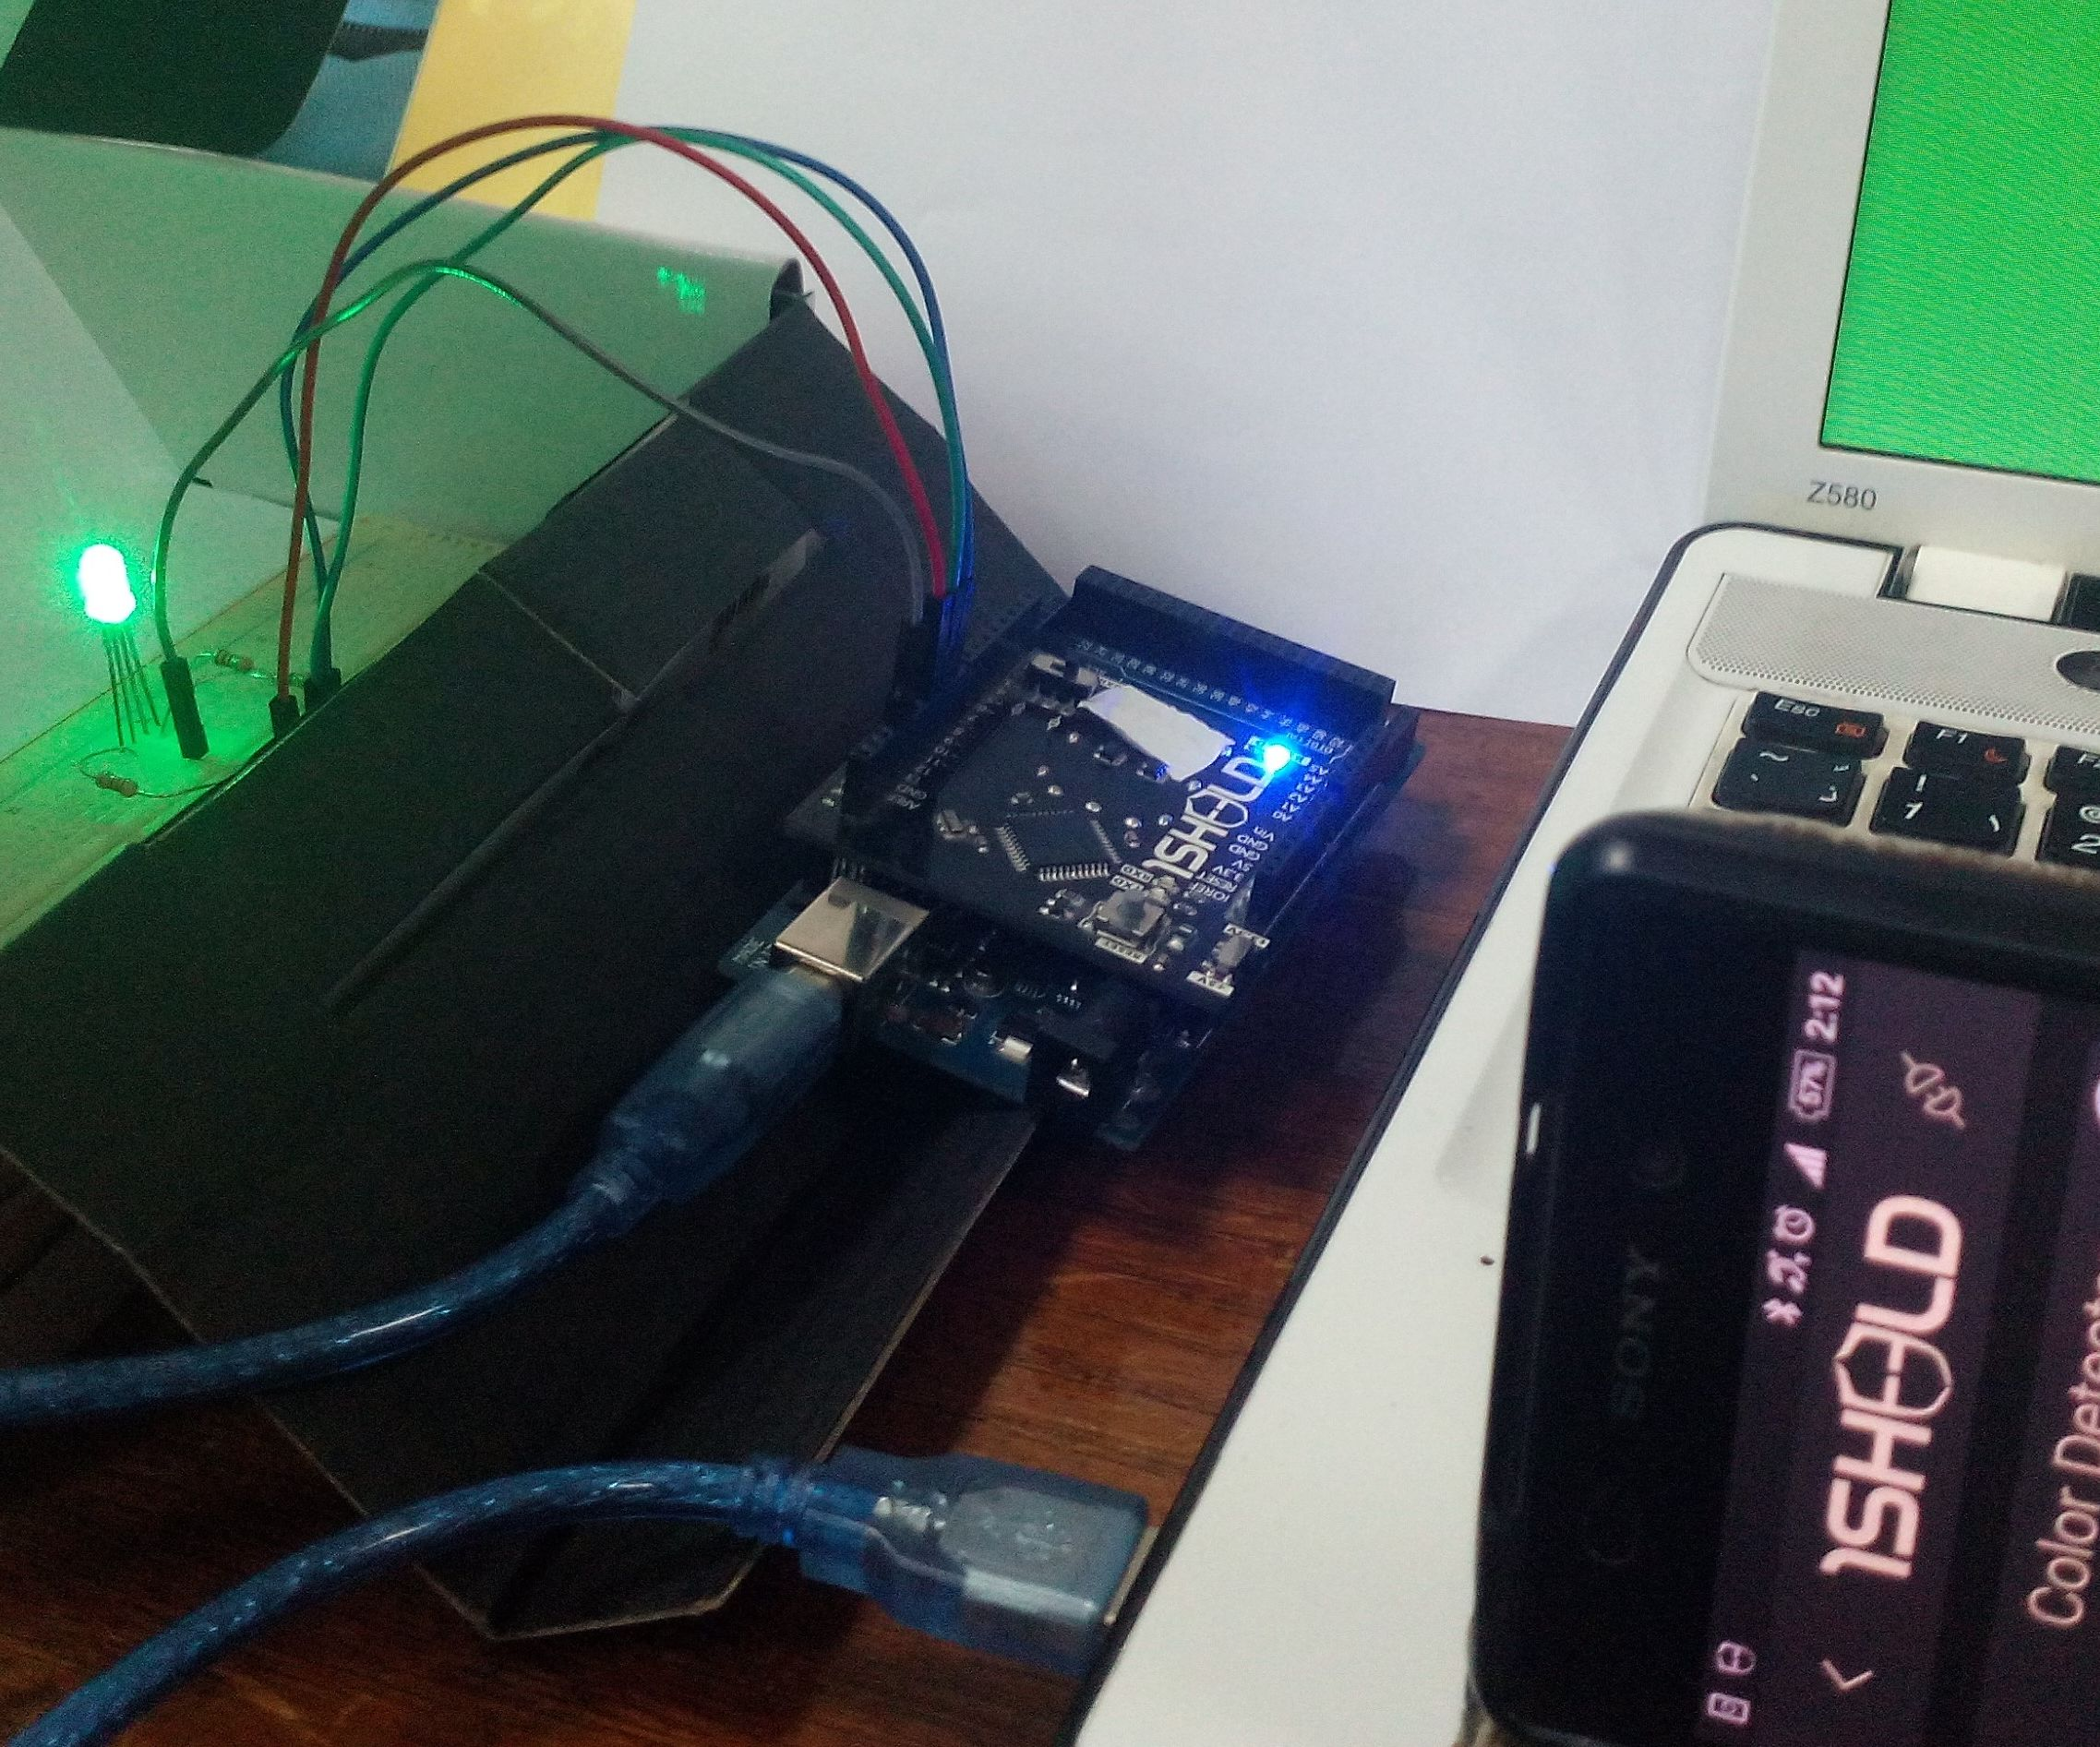 Contorlling an RGB LED with Color Detector Camera